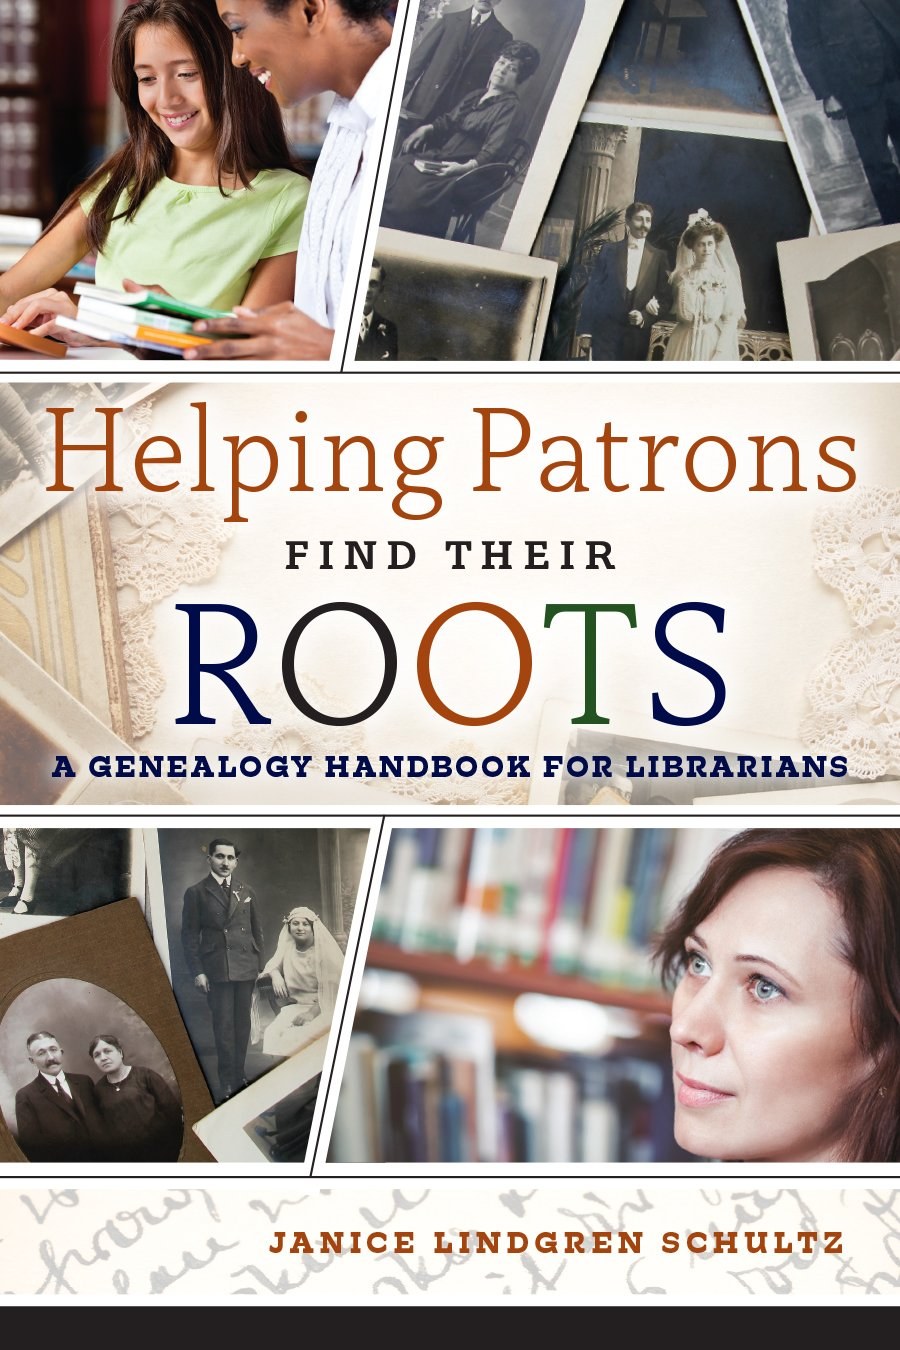 Helping Patrons Find Their Roots: A Genealogy Handbook for Librarians by American Library Association